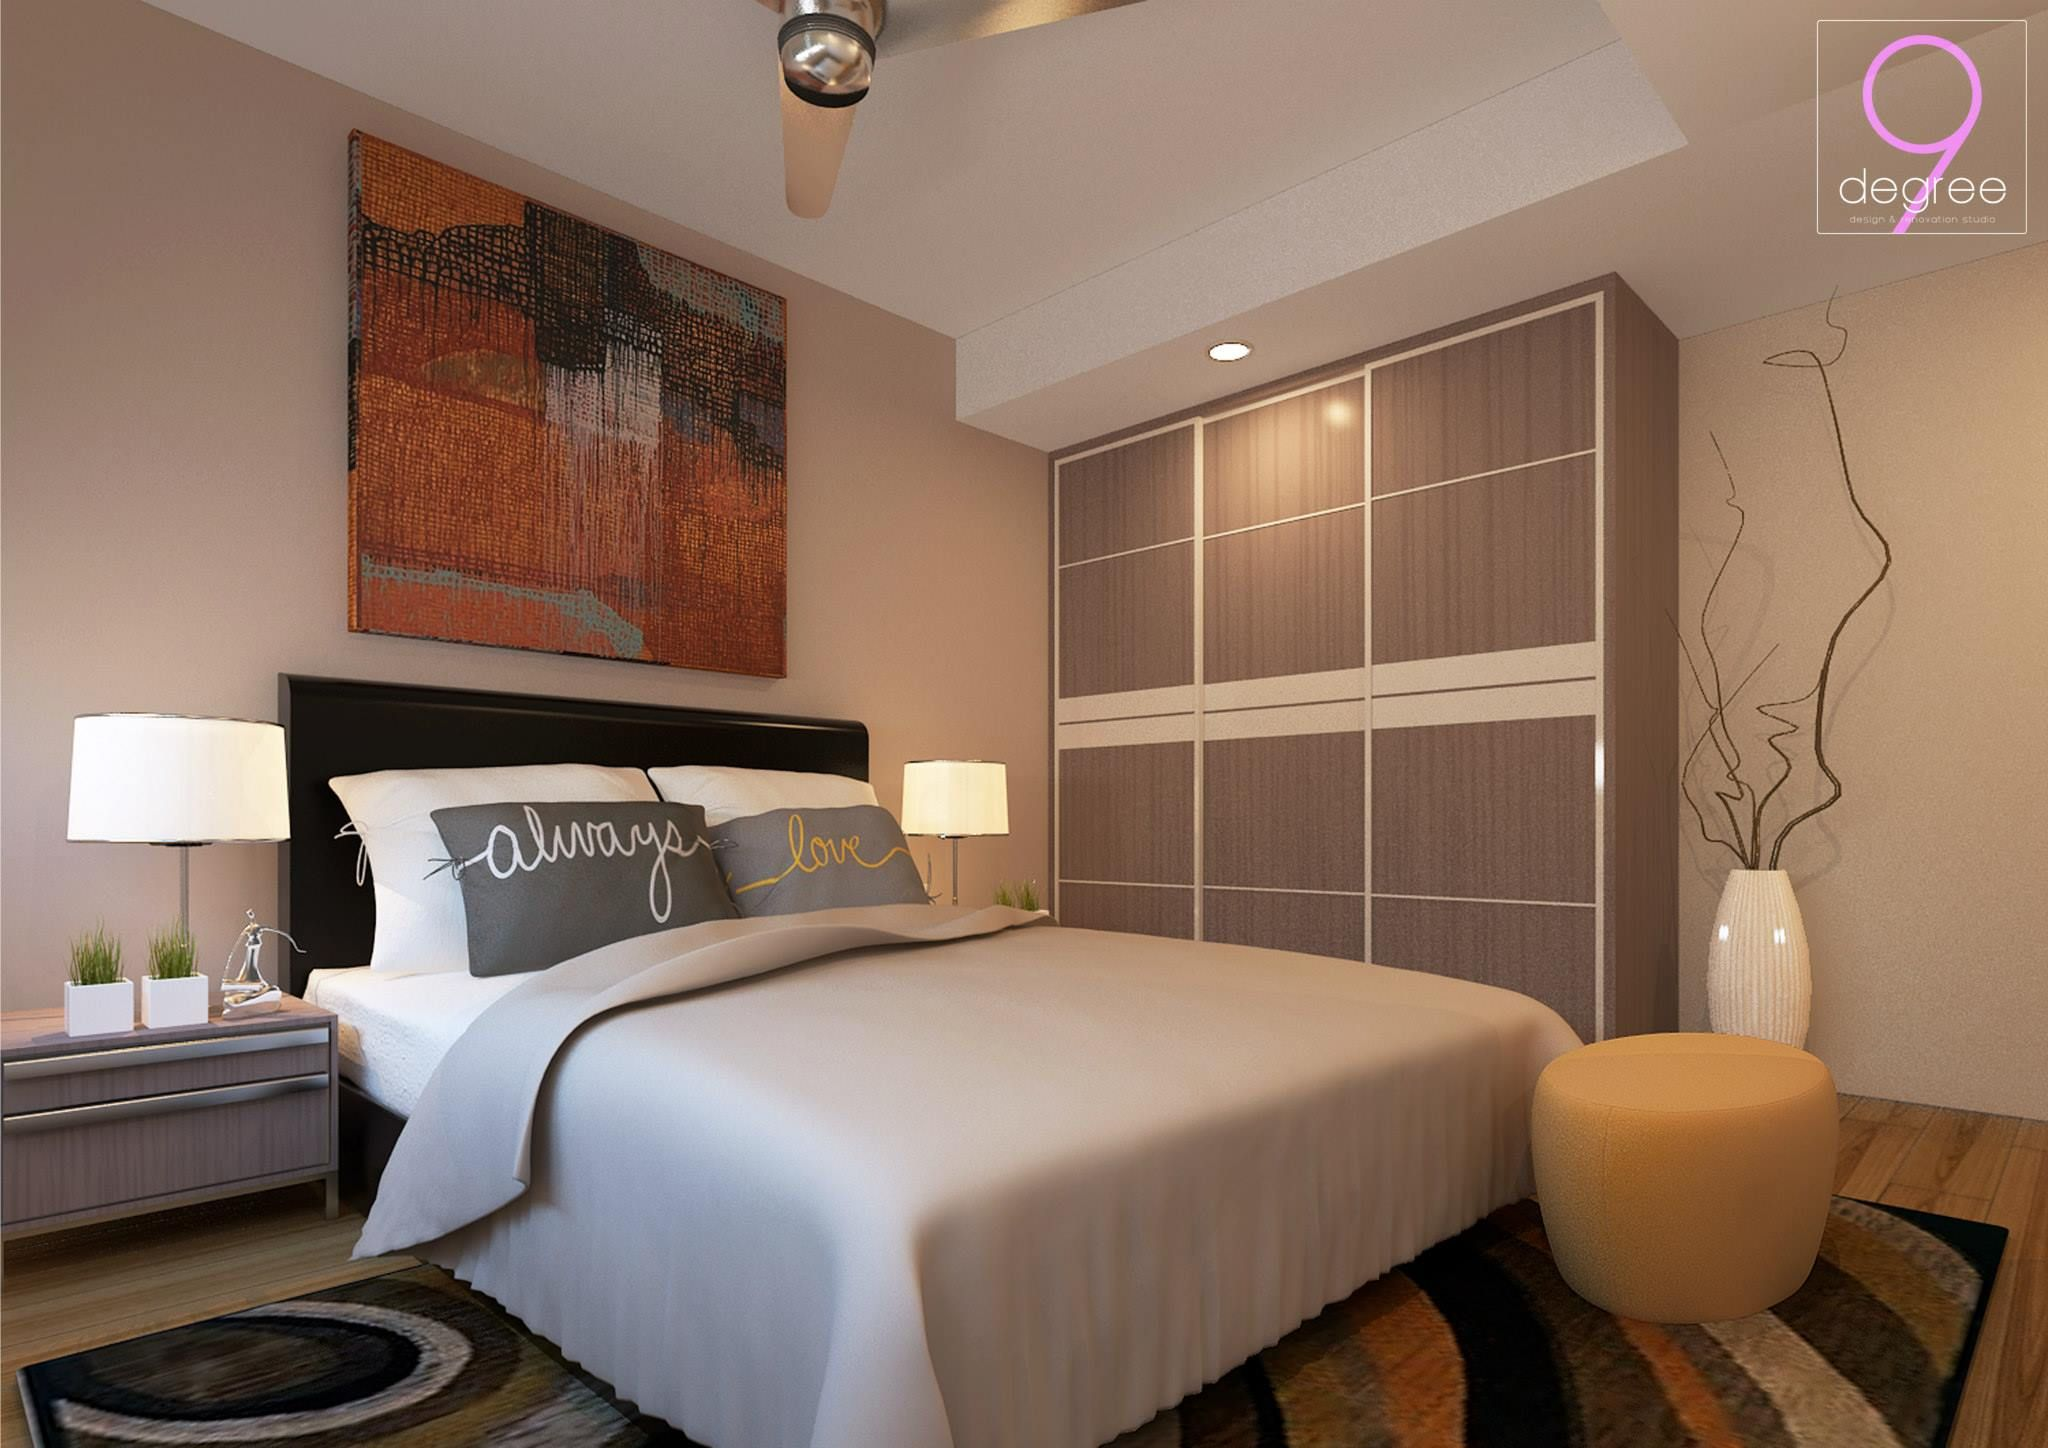 Master Bedroom Hdb Small Space Decor Pinterest Master Bedroom Bedrooms And Interiors